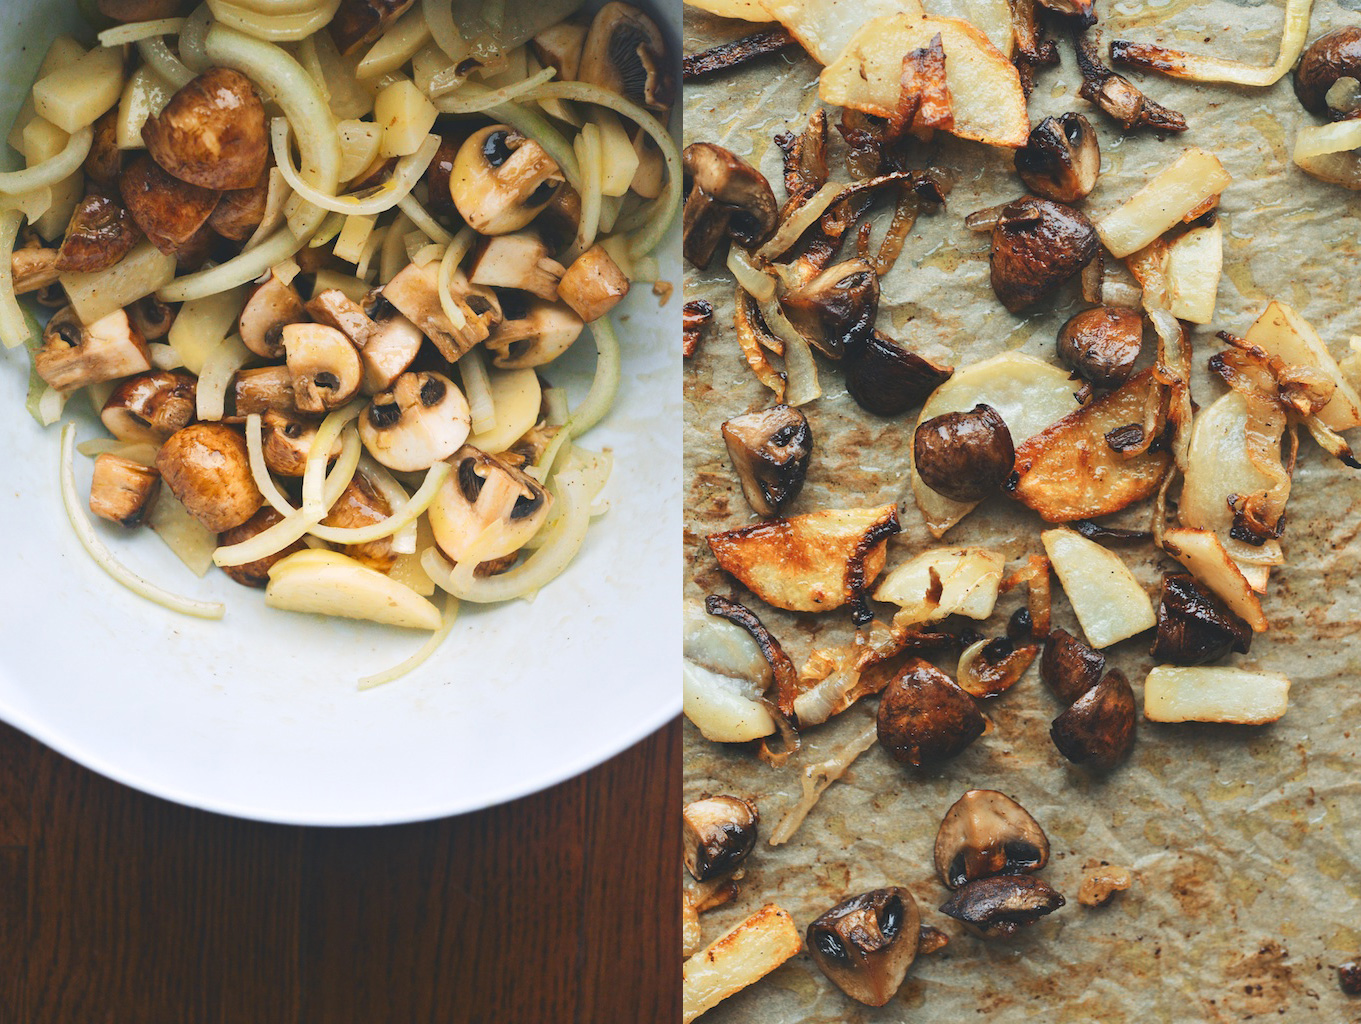 mushrooms, potatoes, and onions: pre and post roast